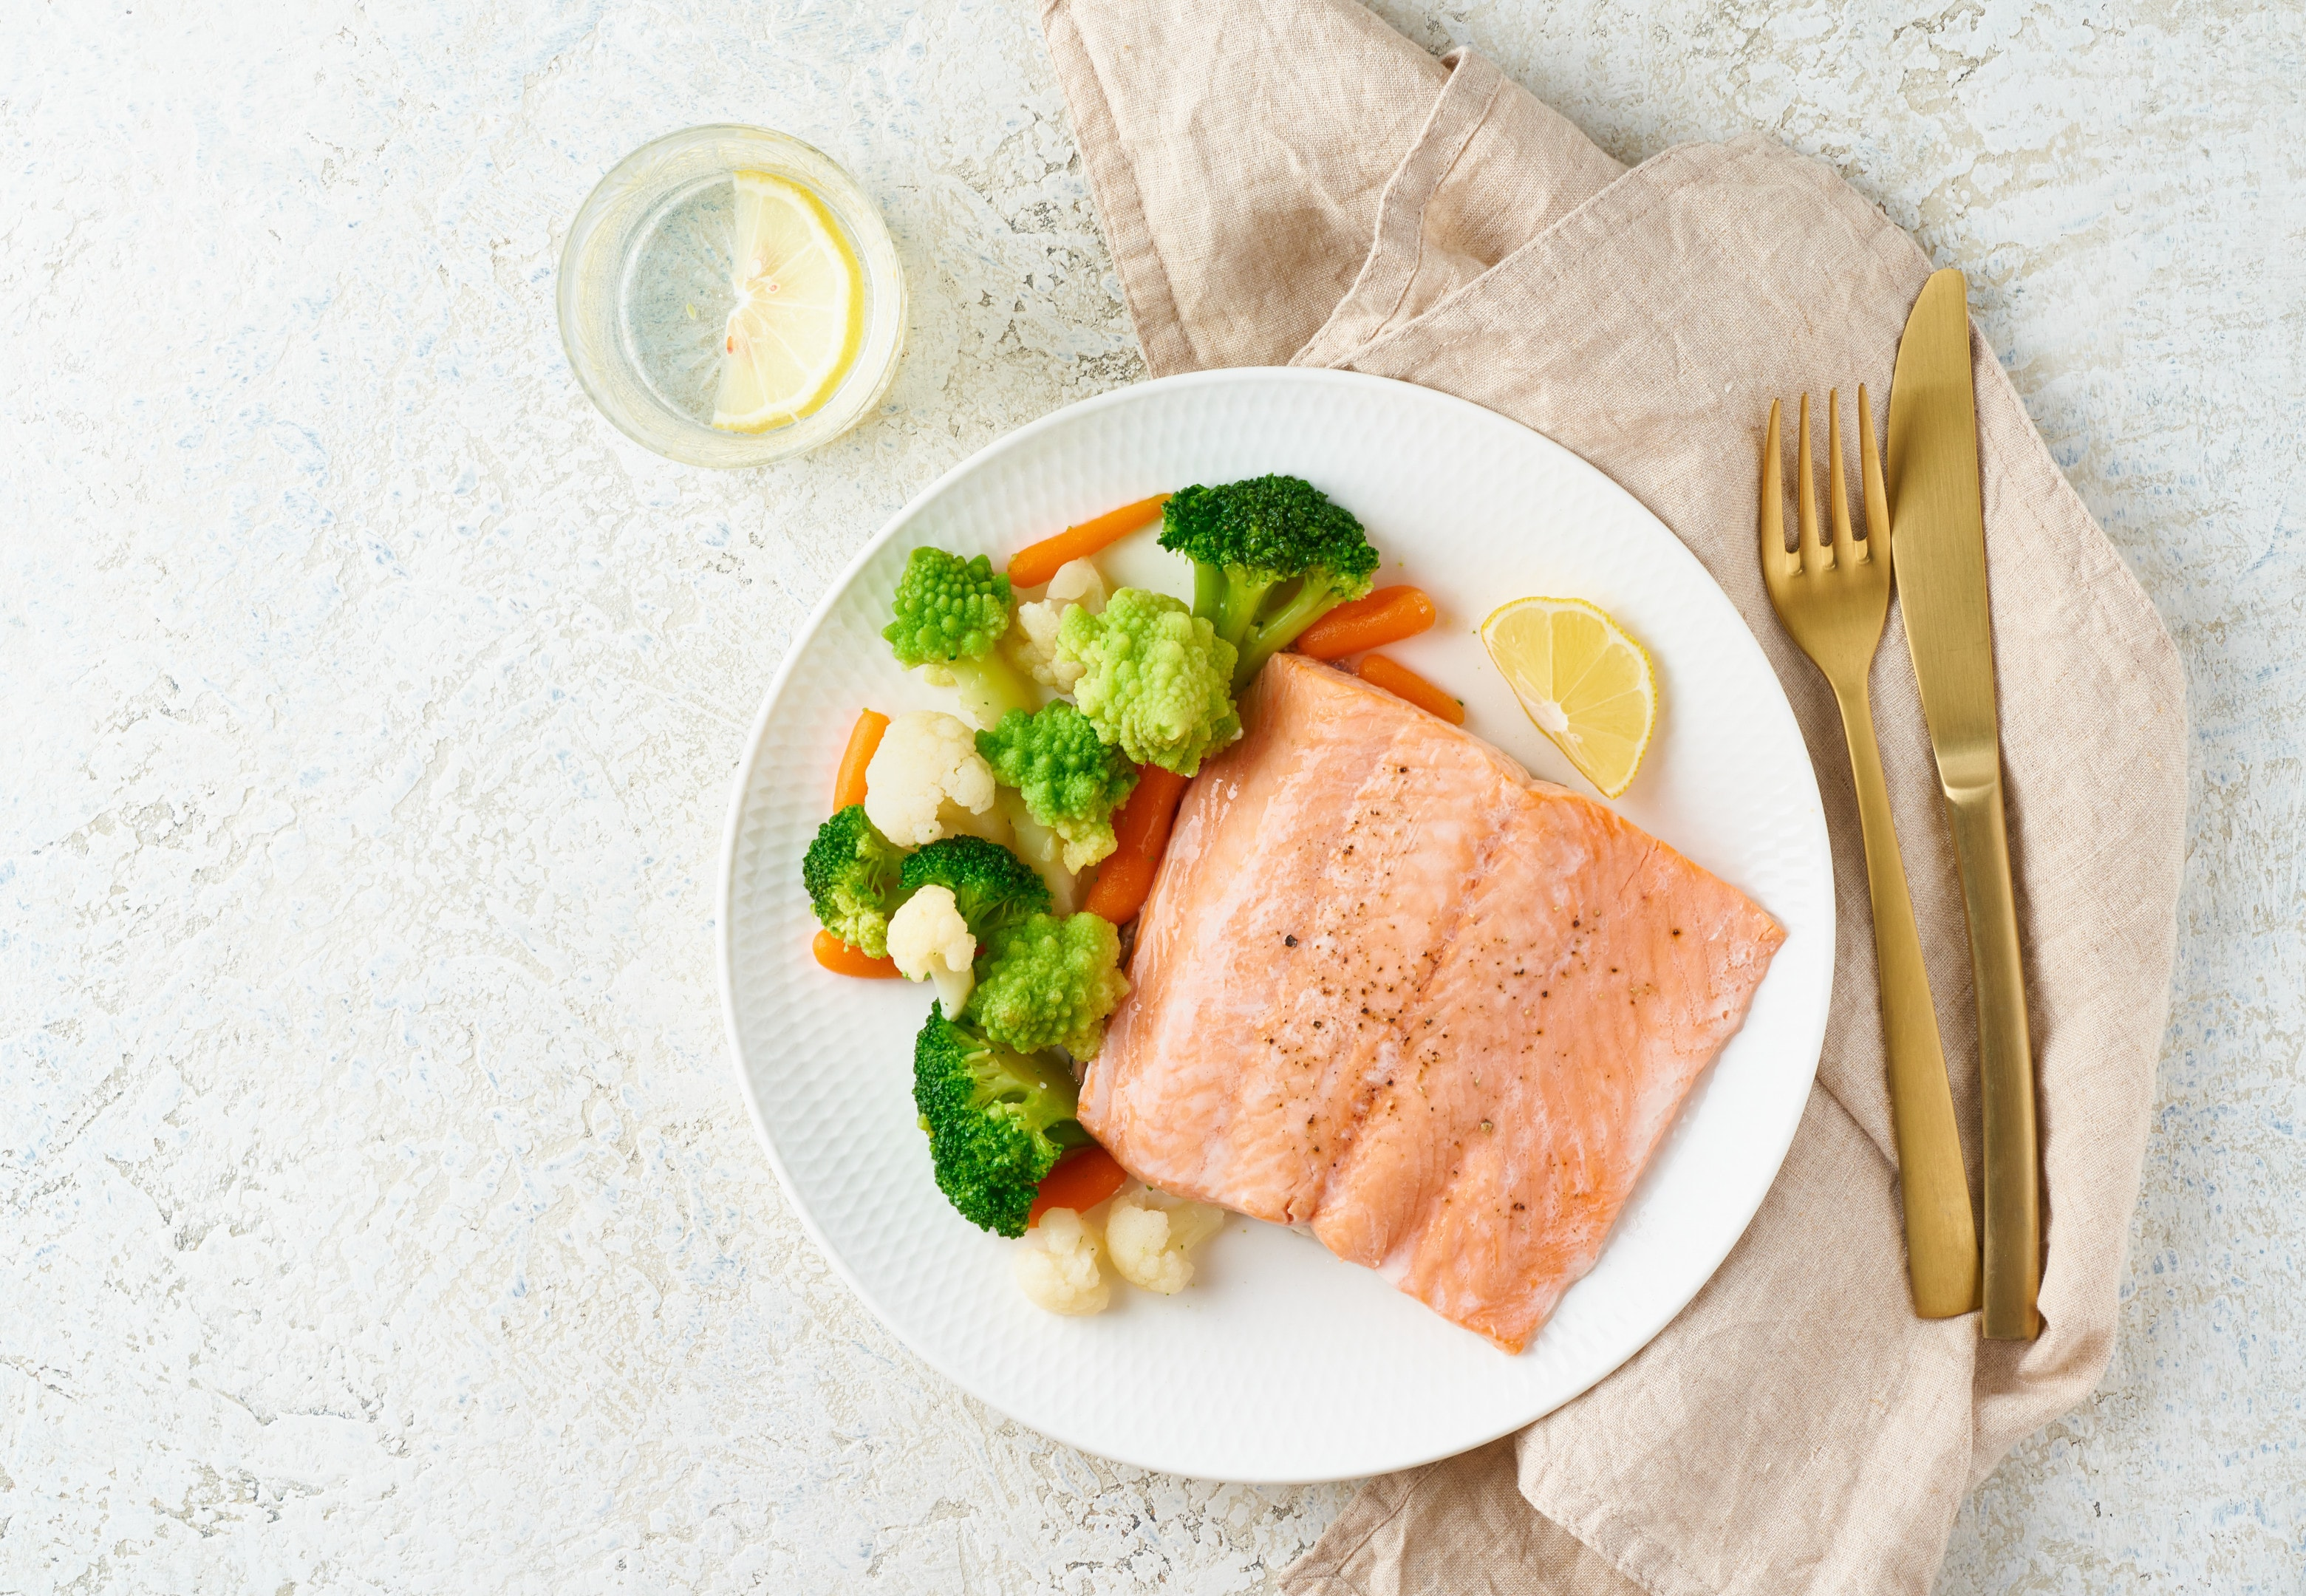 Steamed salmon with steamed broccoli, Romanesco and cauliflower